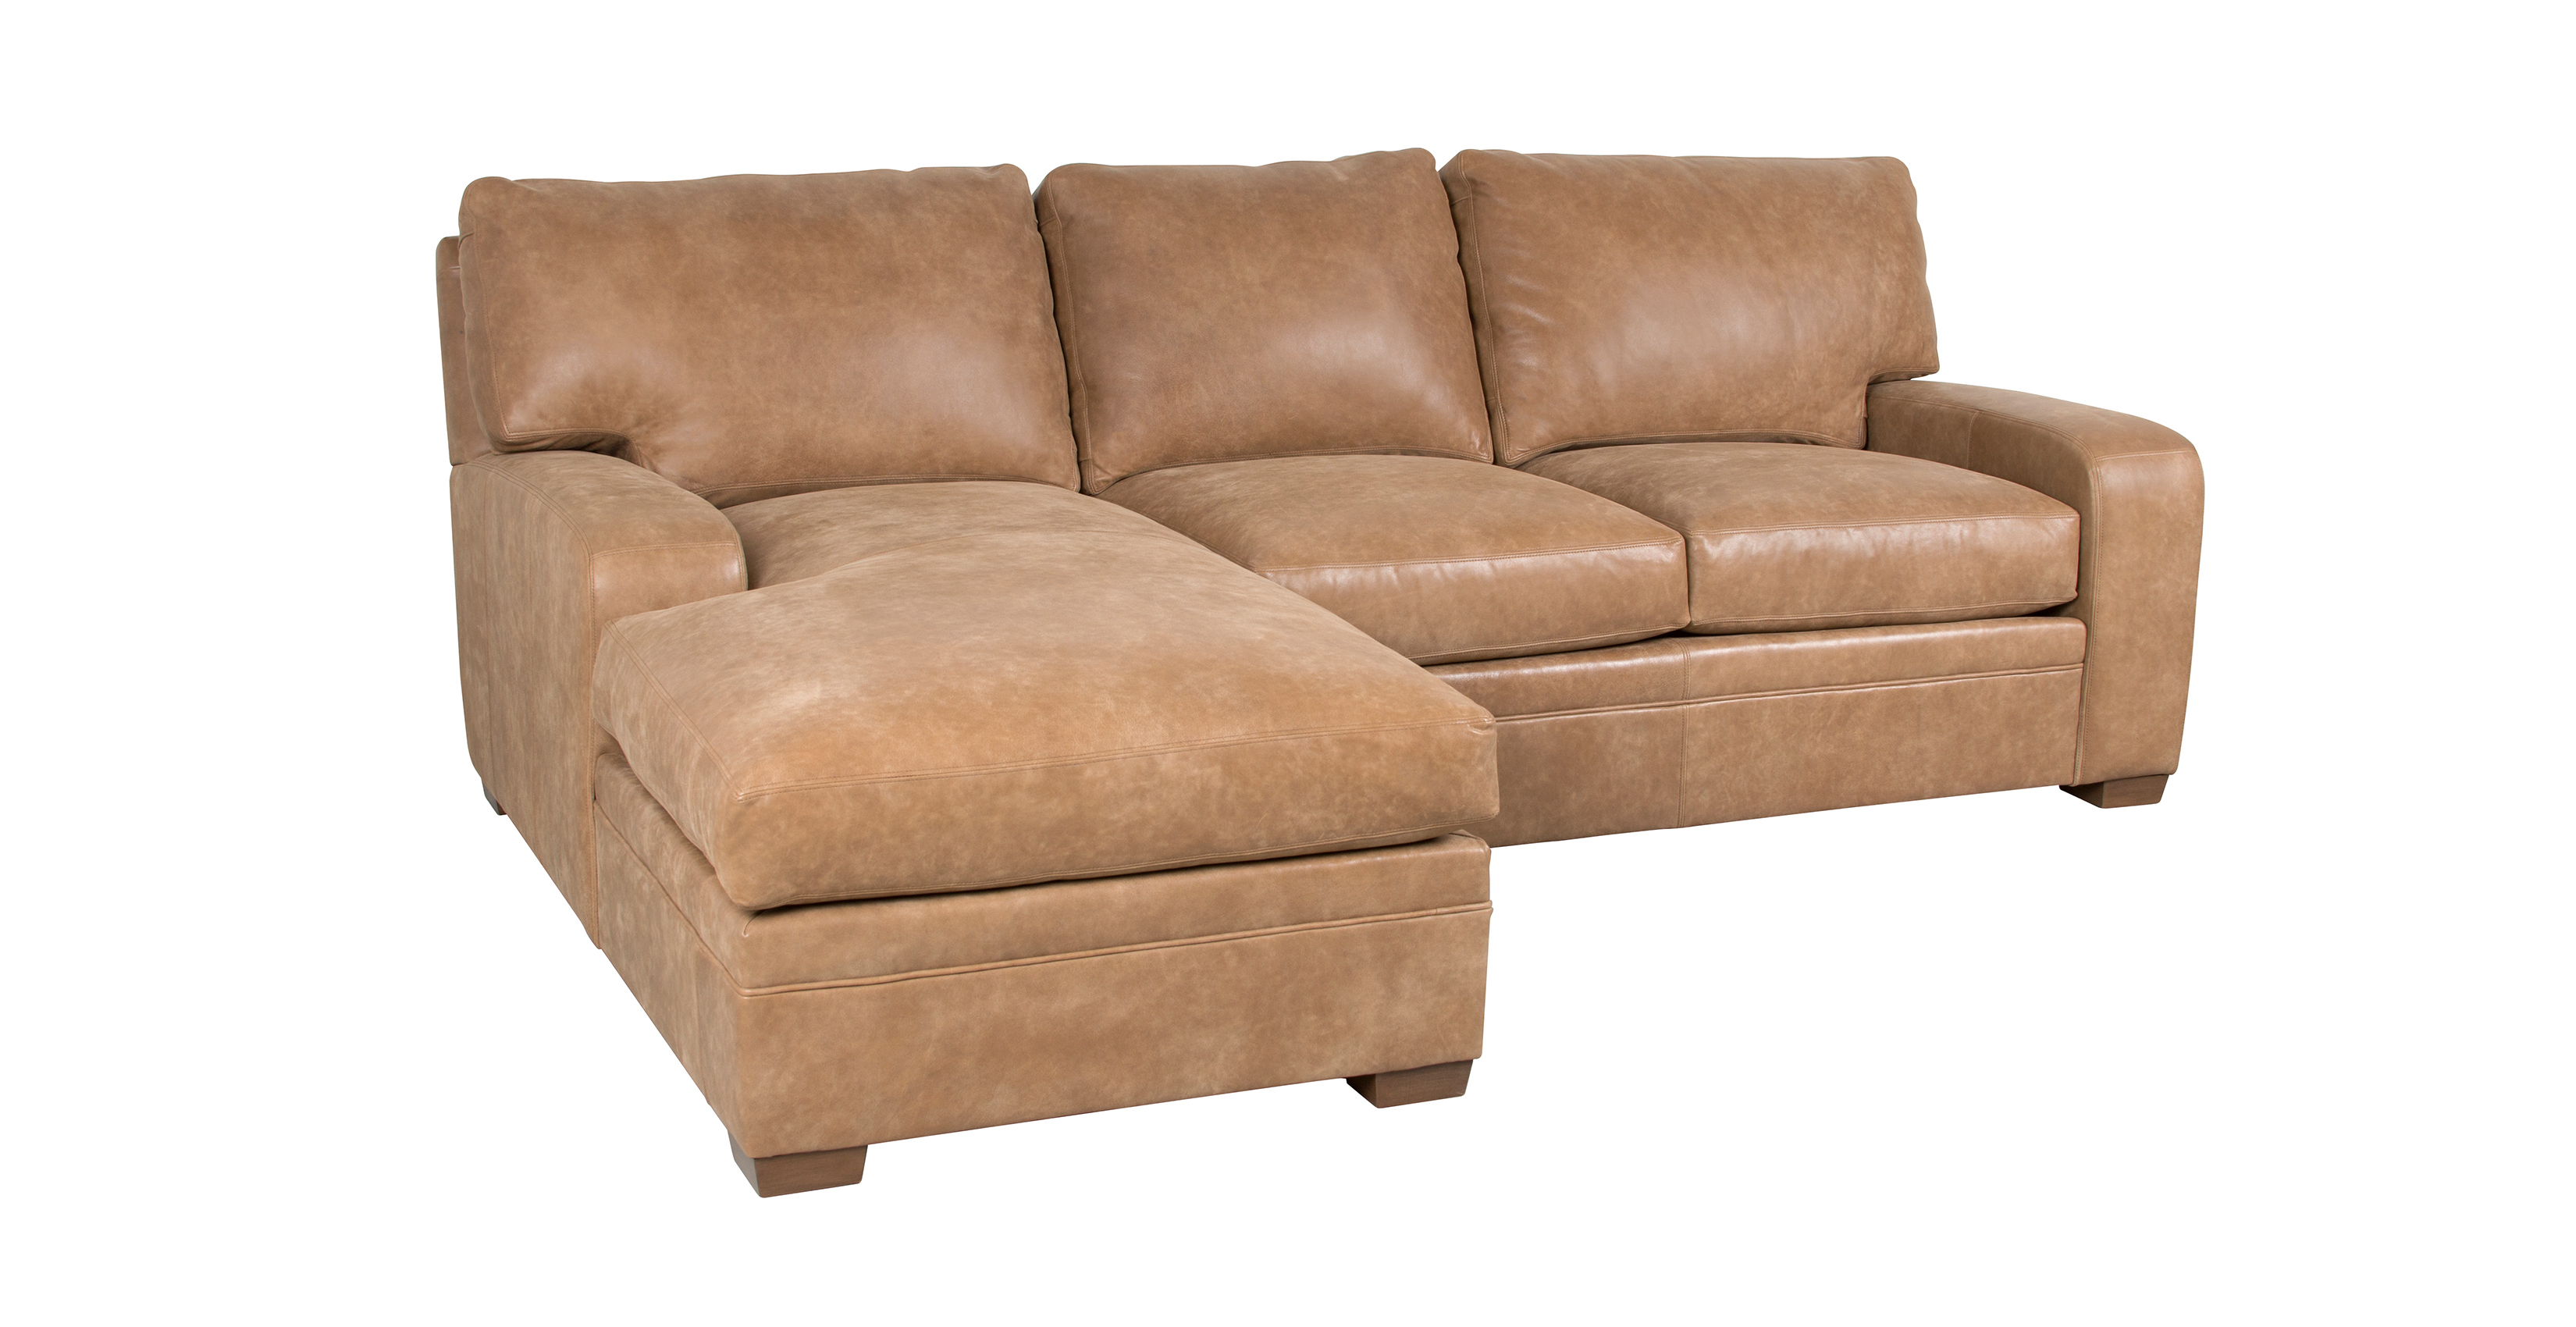 Leather Sectional Vancouver Classic Leather Vancouver Sectional